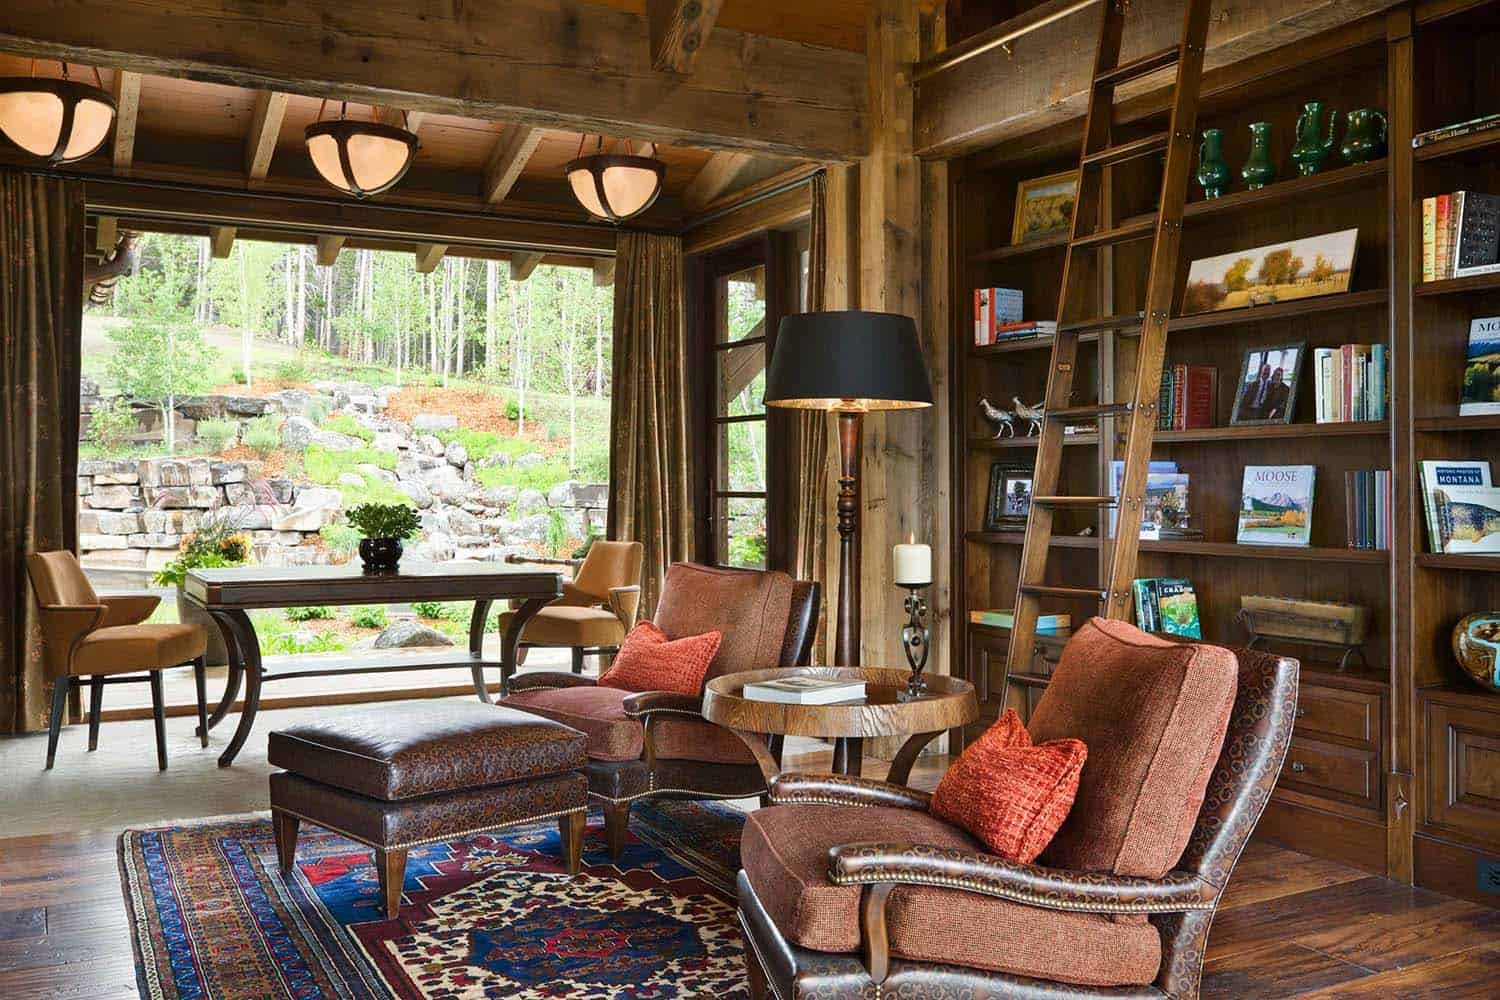 residence-rustic-home-library